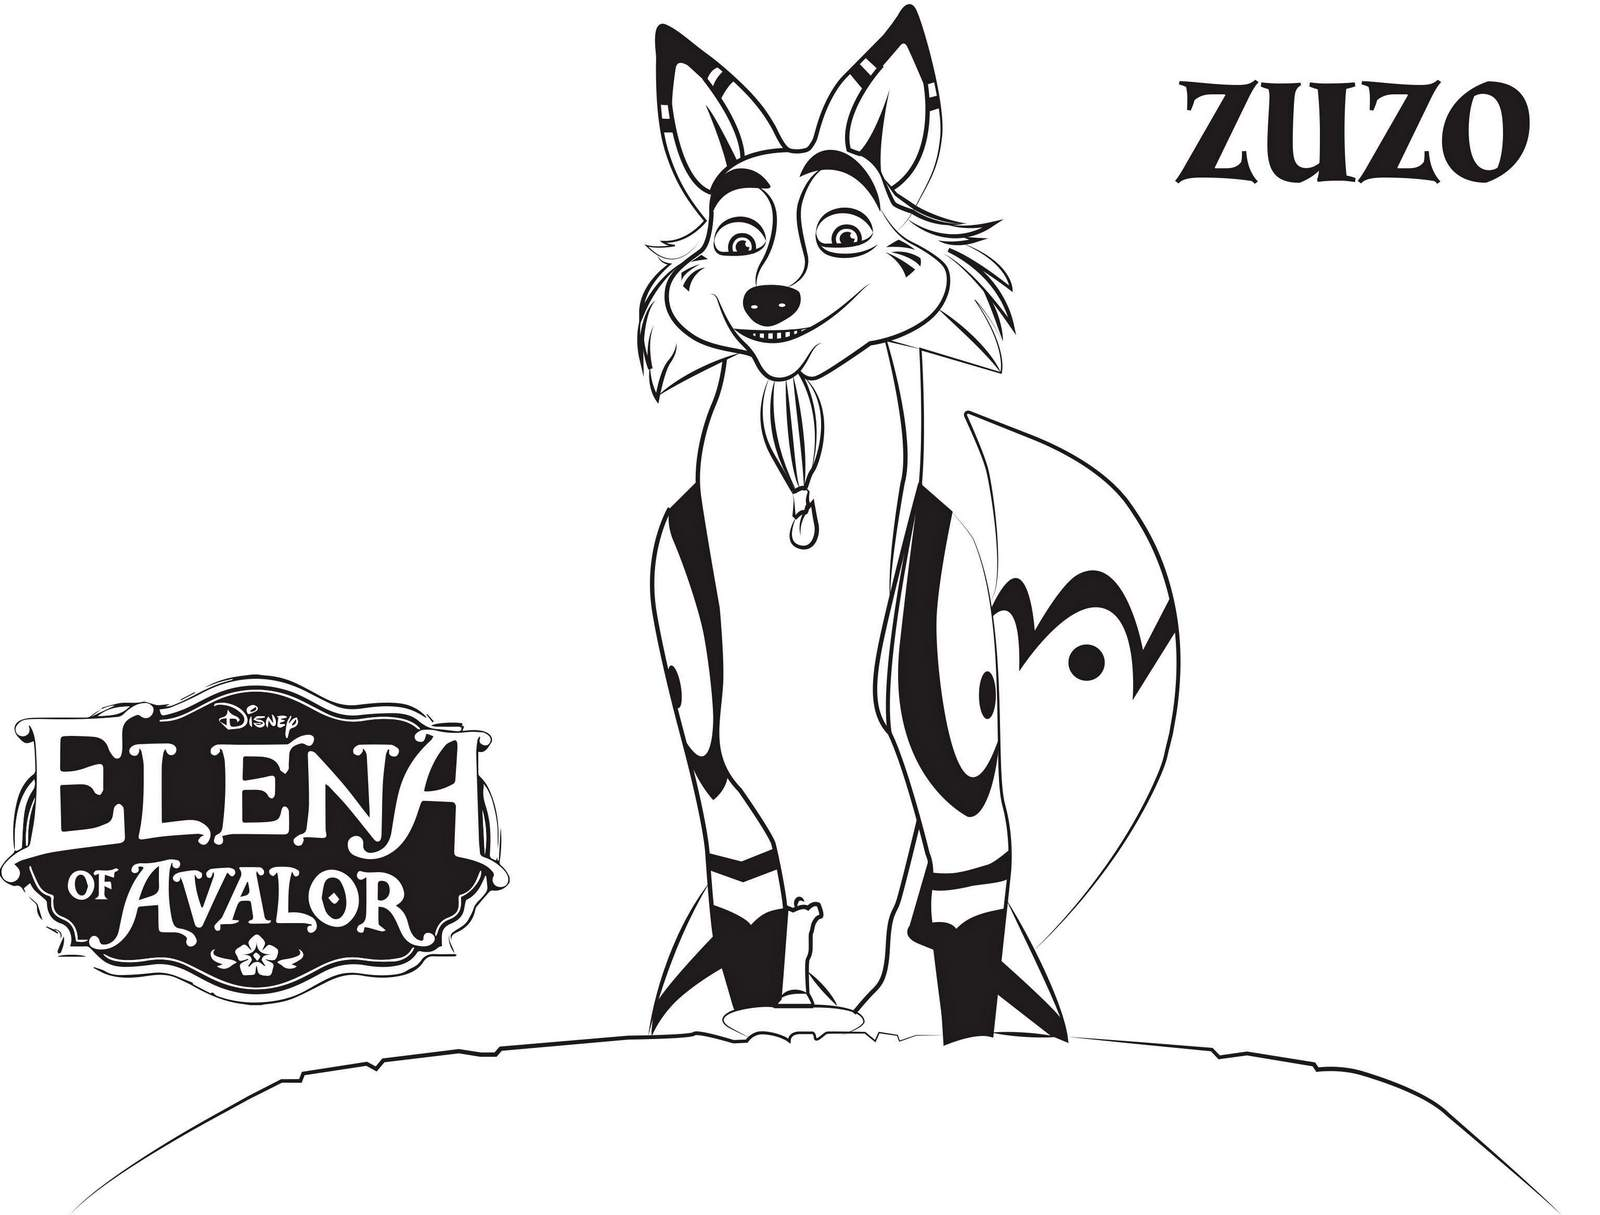 Zuzo From Elena Of Avalor Coloring Sheets